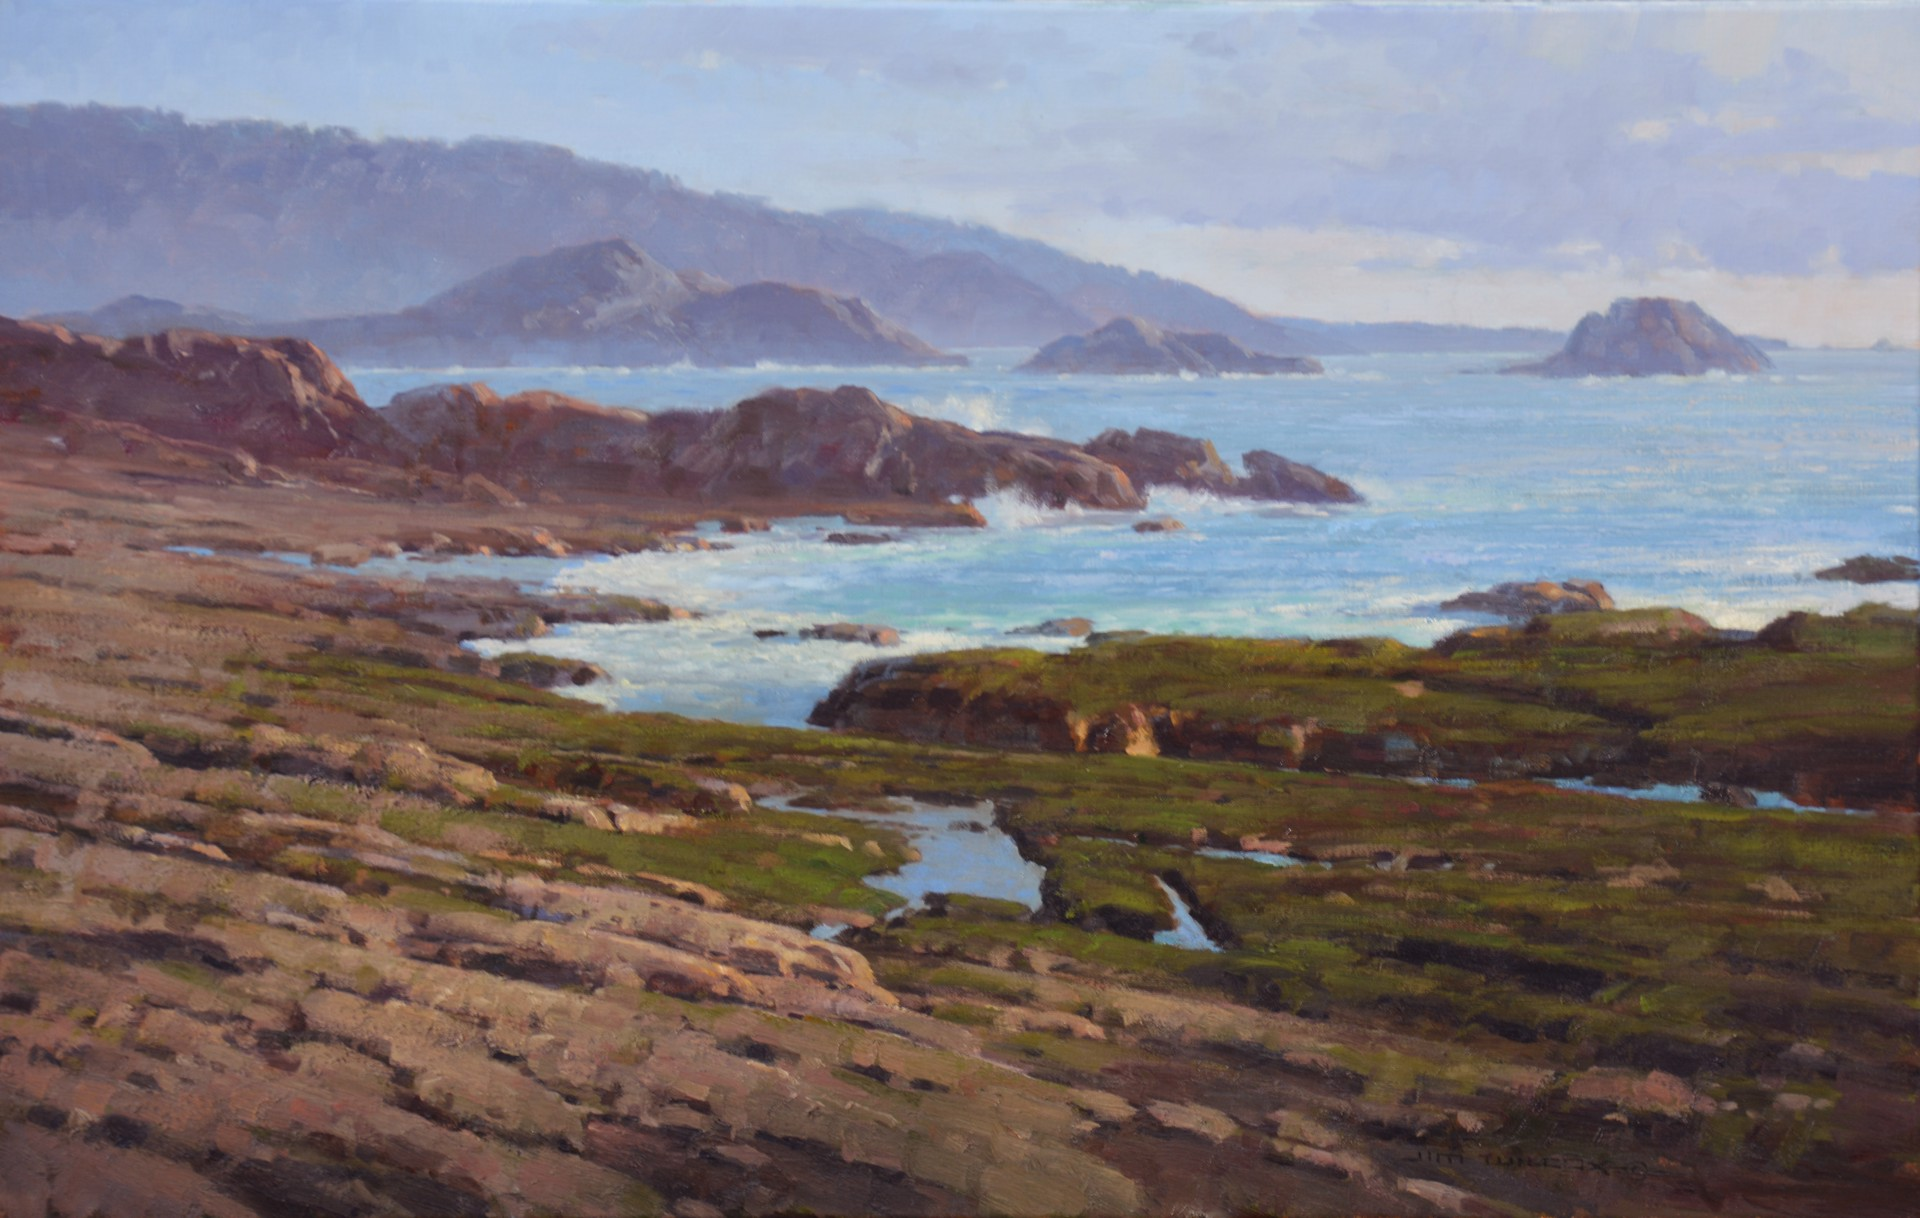 Low Tide at Point Lobos by Jim Wilcox